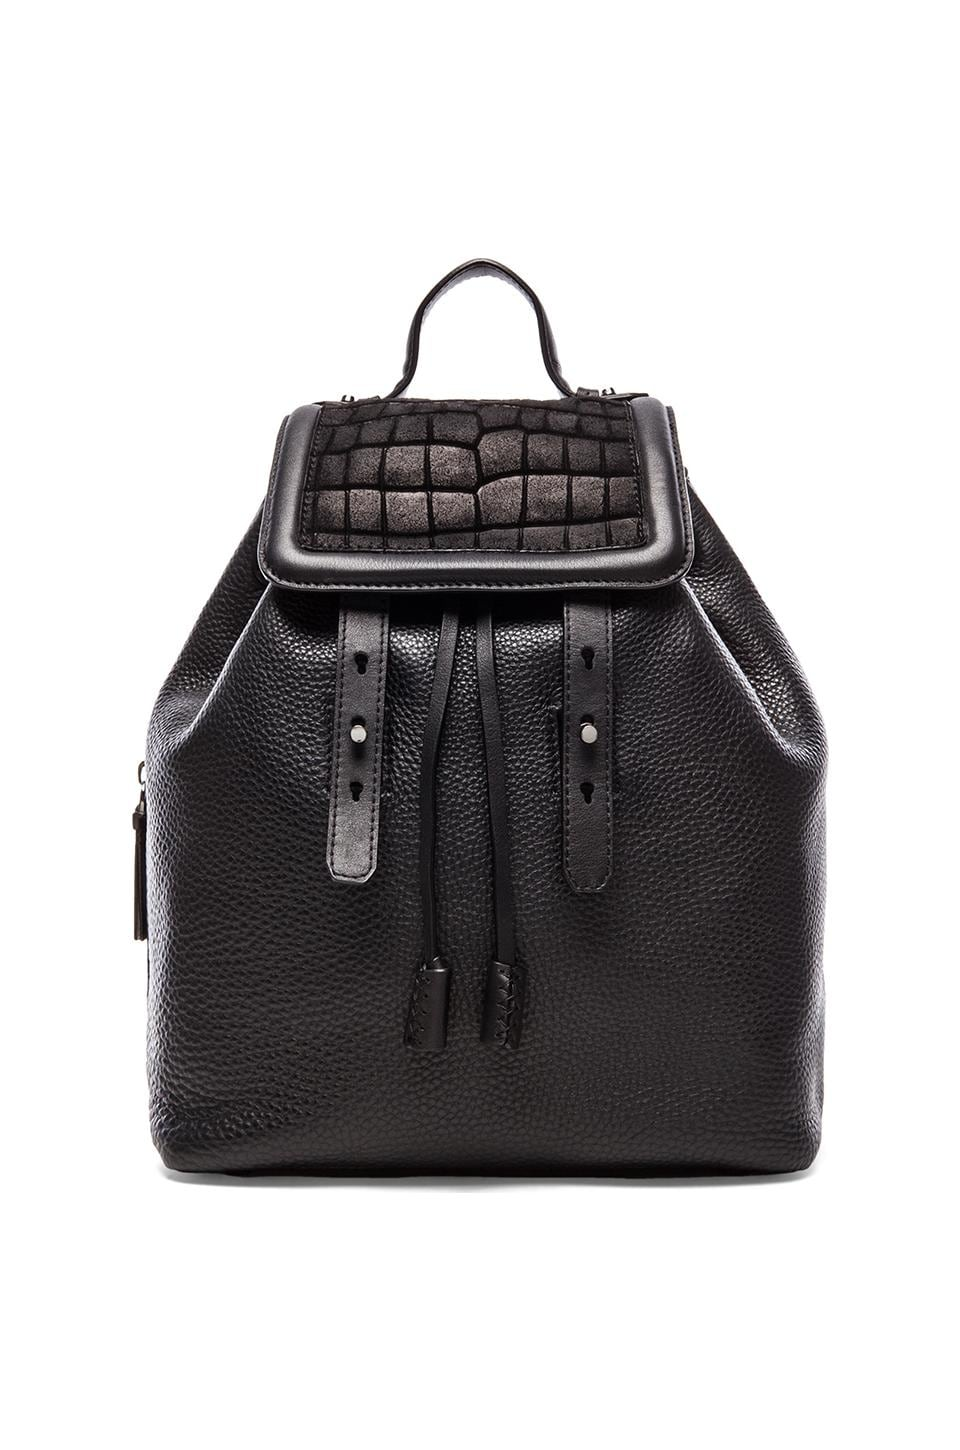 Mackage Tanner Backpack in Black